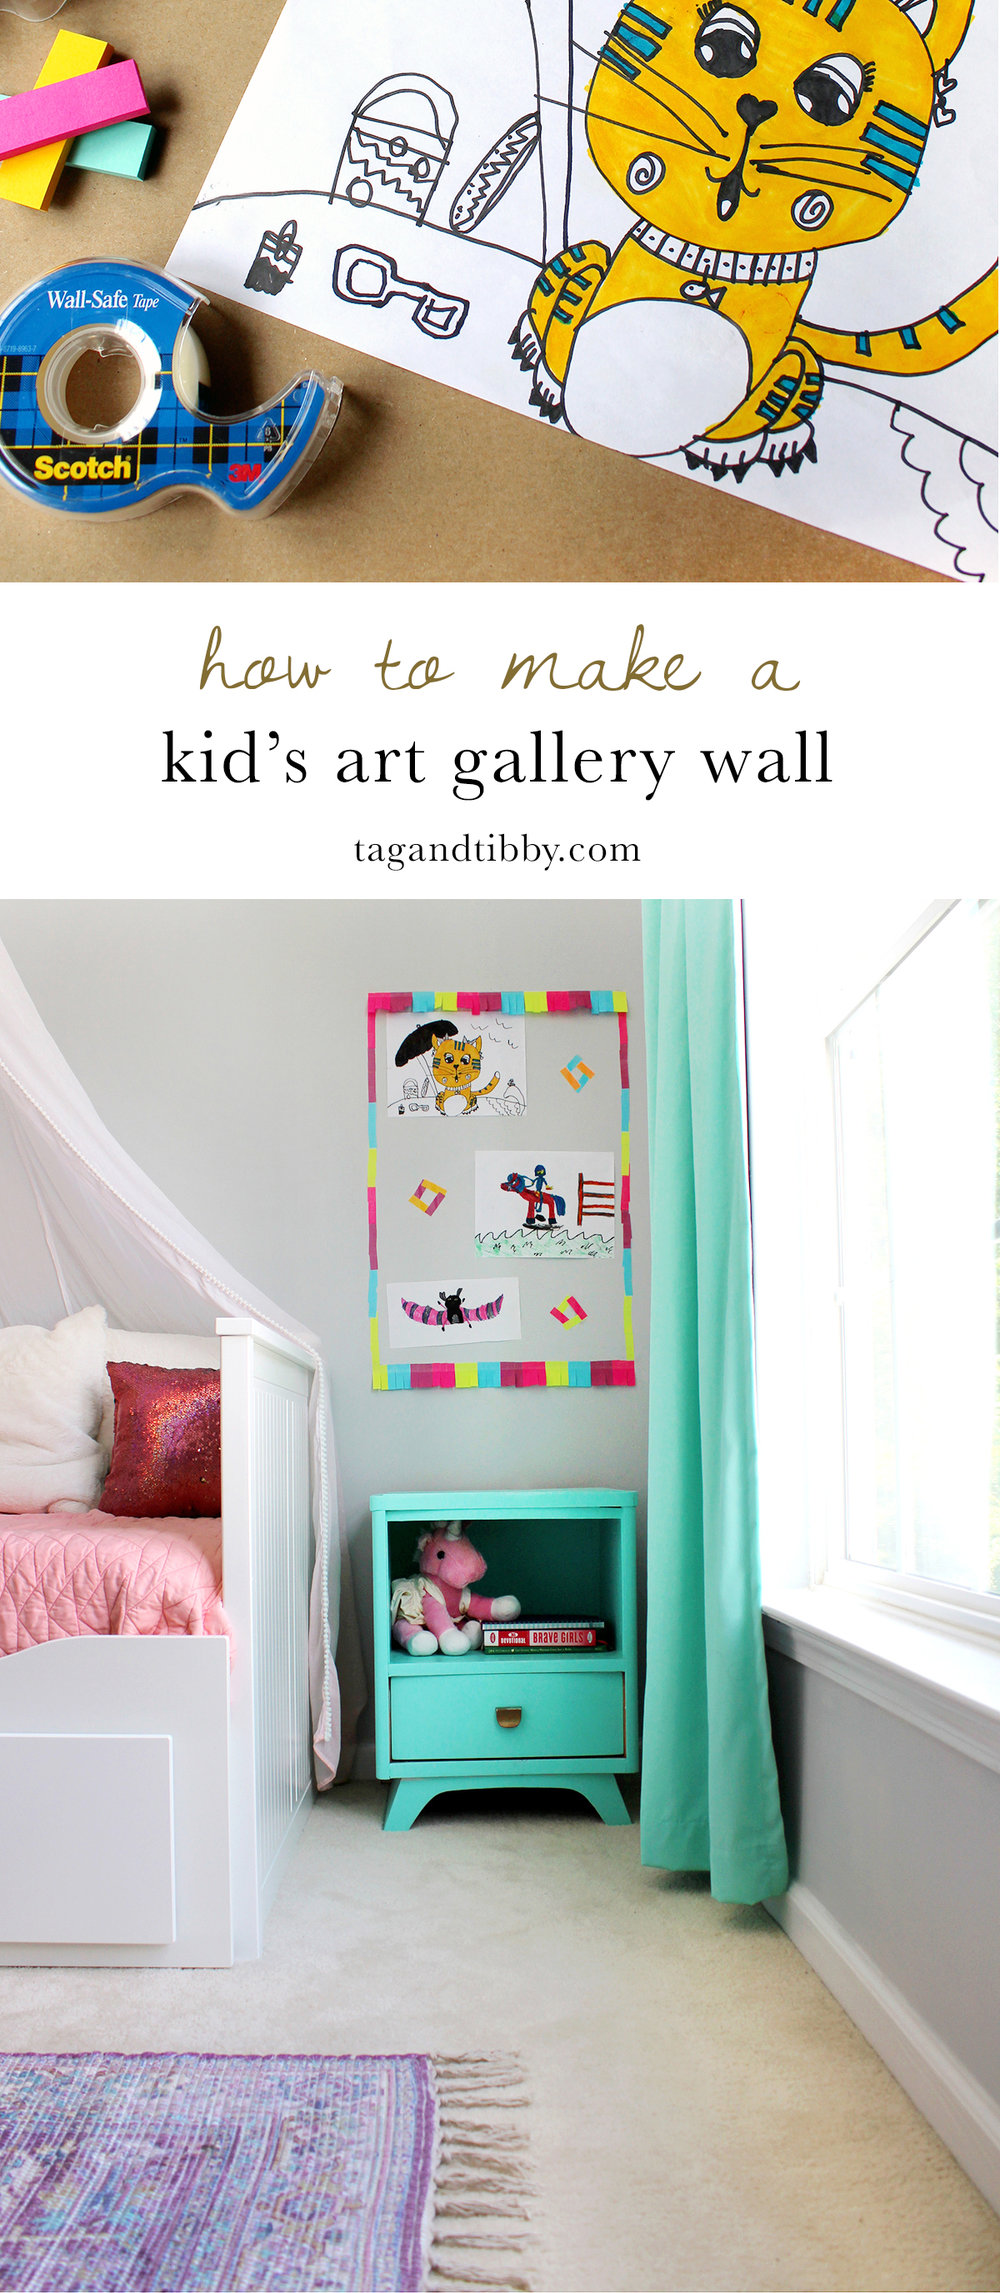 Learn how to make this fun art gallery wall with summer art projects. #BackToSchoolGoals18 #ad #kidscraft #tweencraft #creativekids